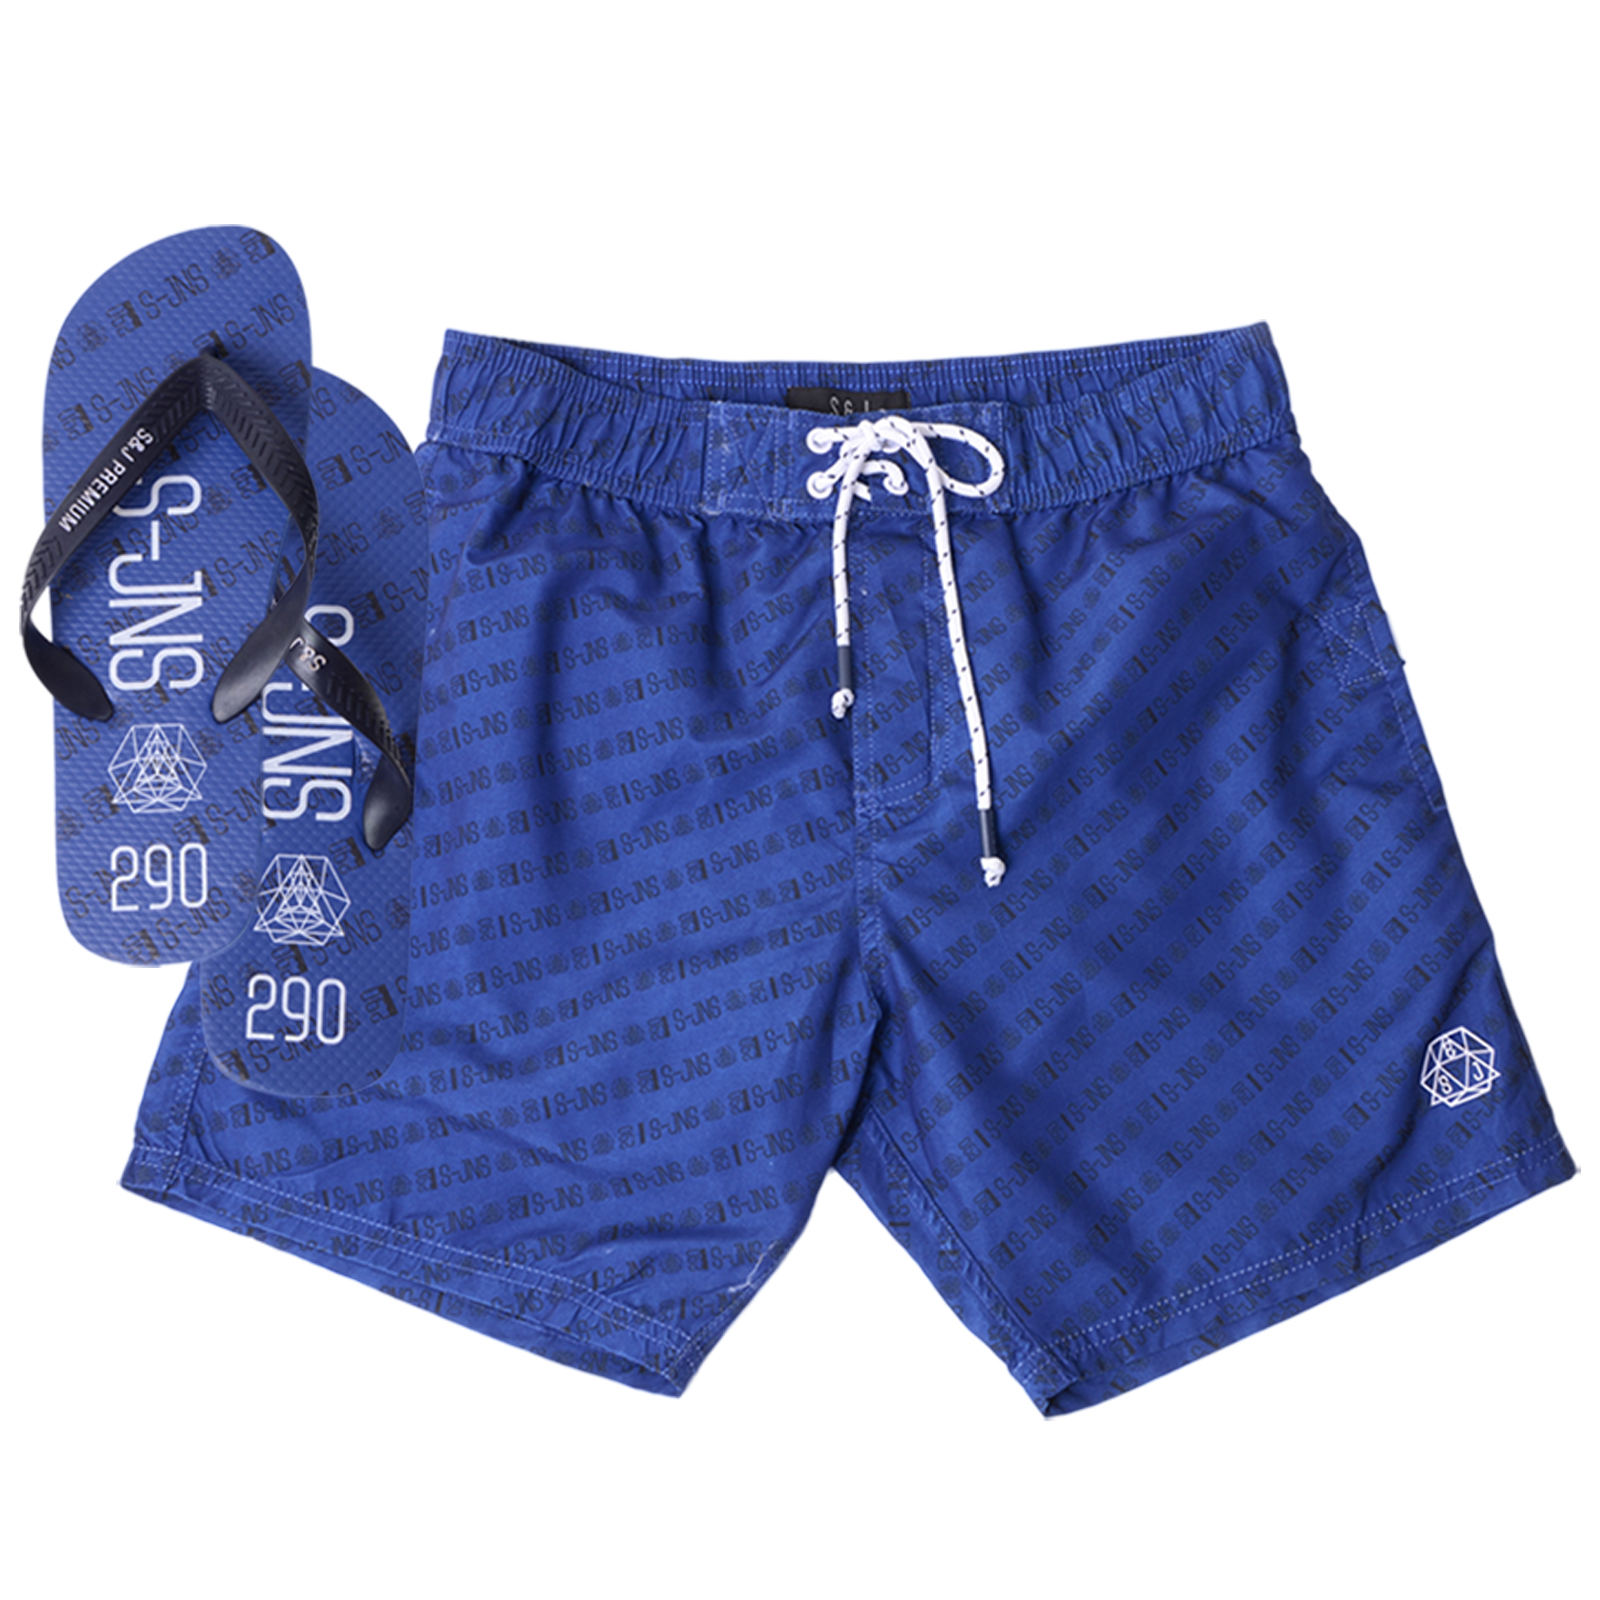 Smith & Jones Mens Baryon Decibel Summer Beach Swim Shorts With Free Flip  Flops; Picture 2 of 2